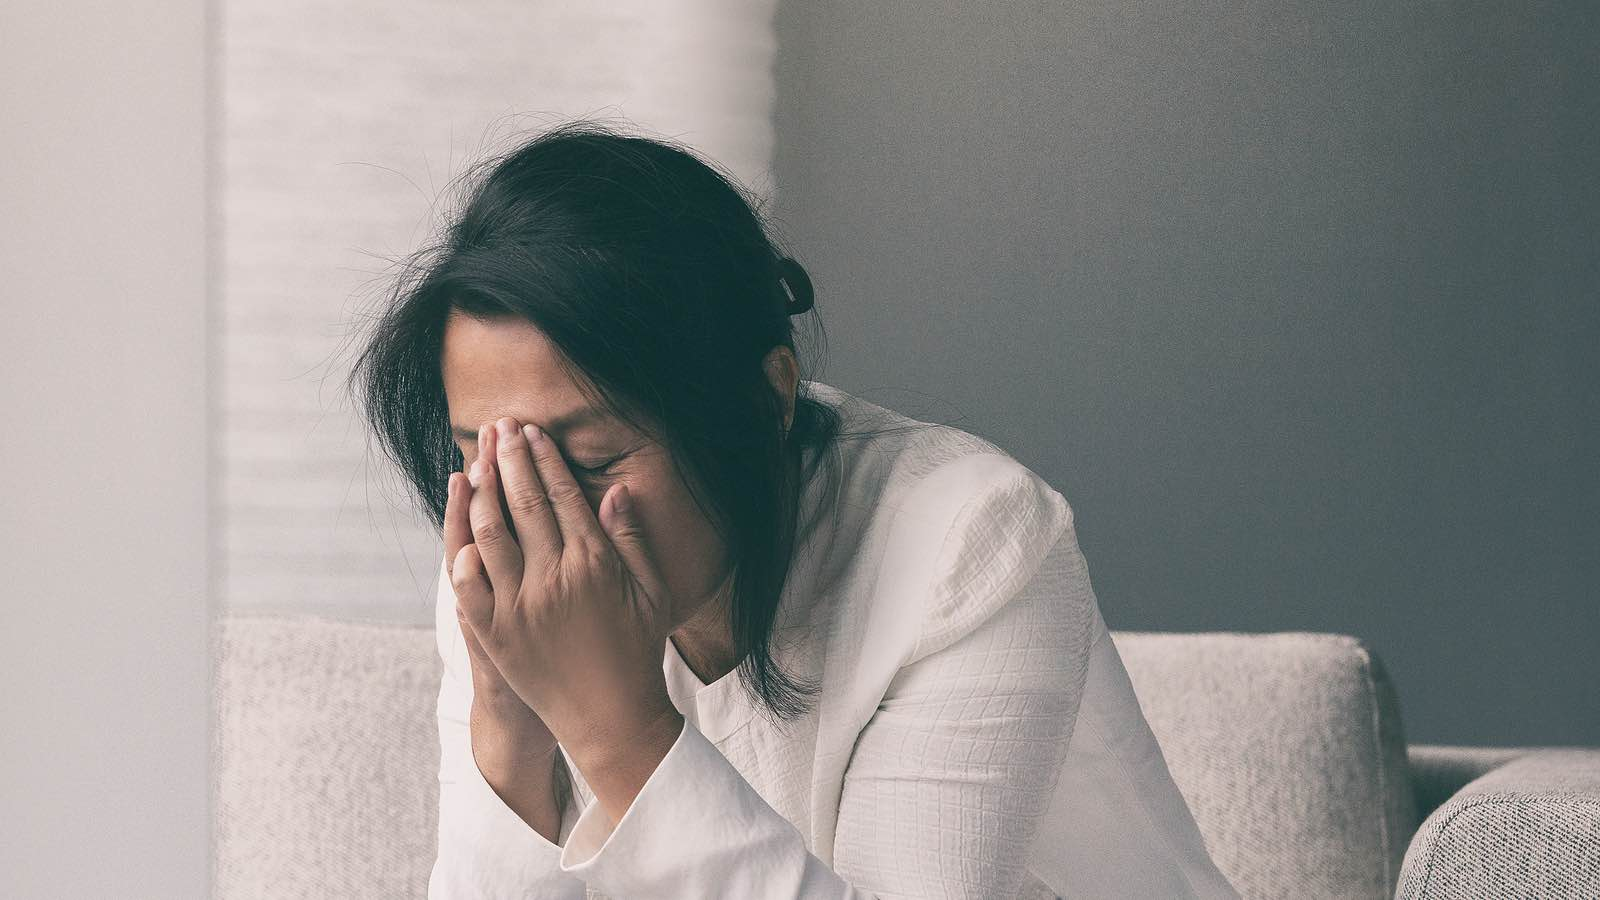 Headaches and Dizziness : Learn to differentiate between common headache types and causes of dizziness in clinical practice